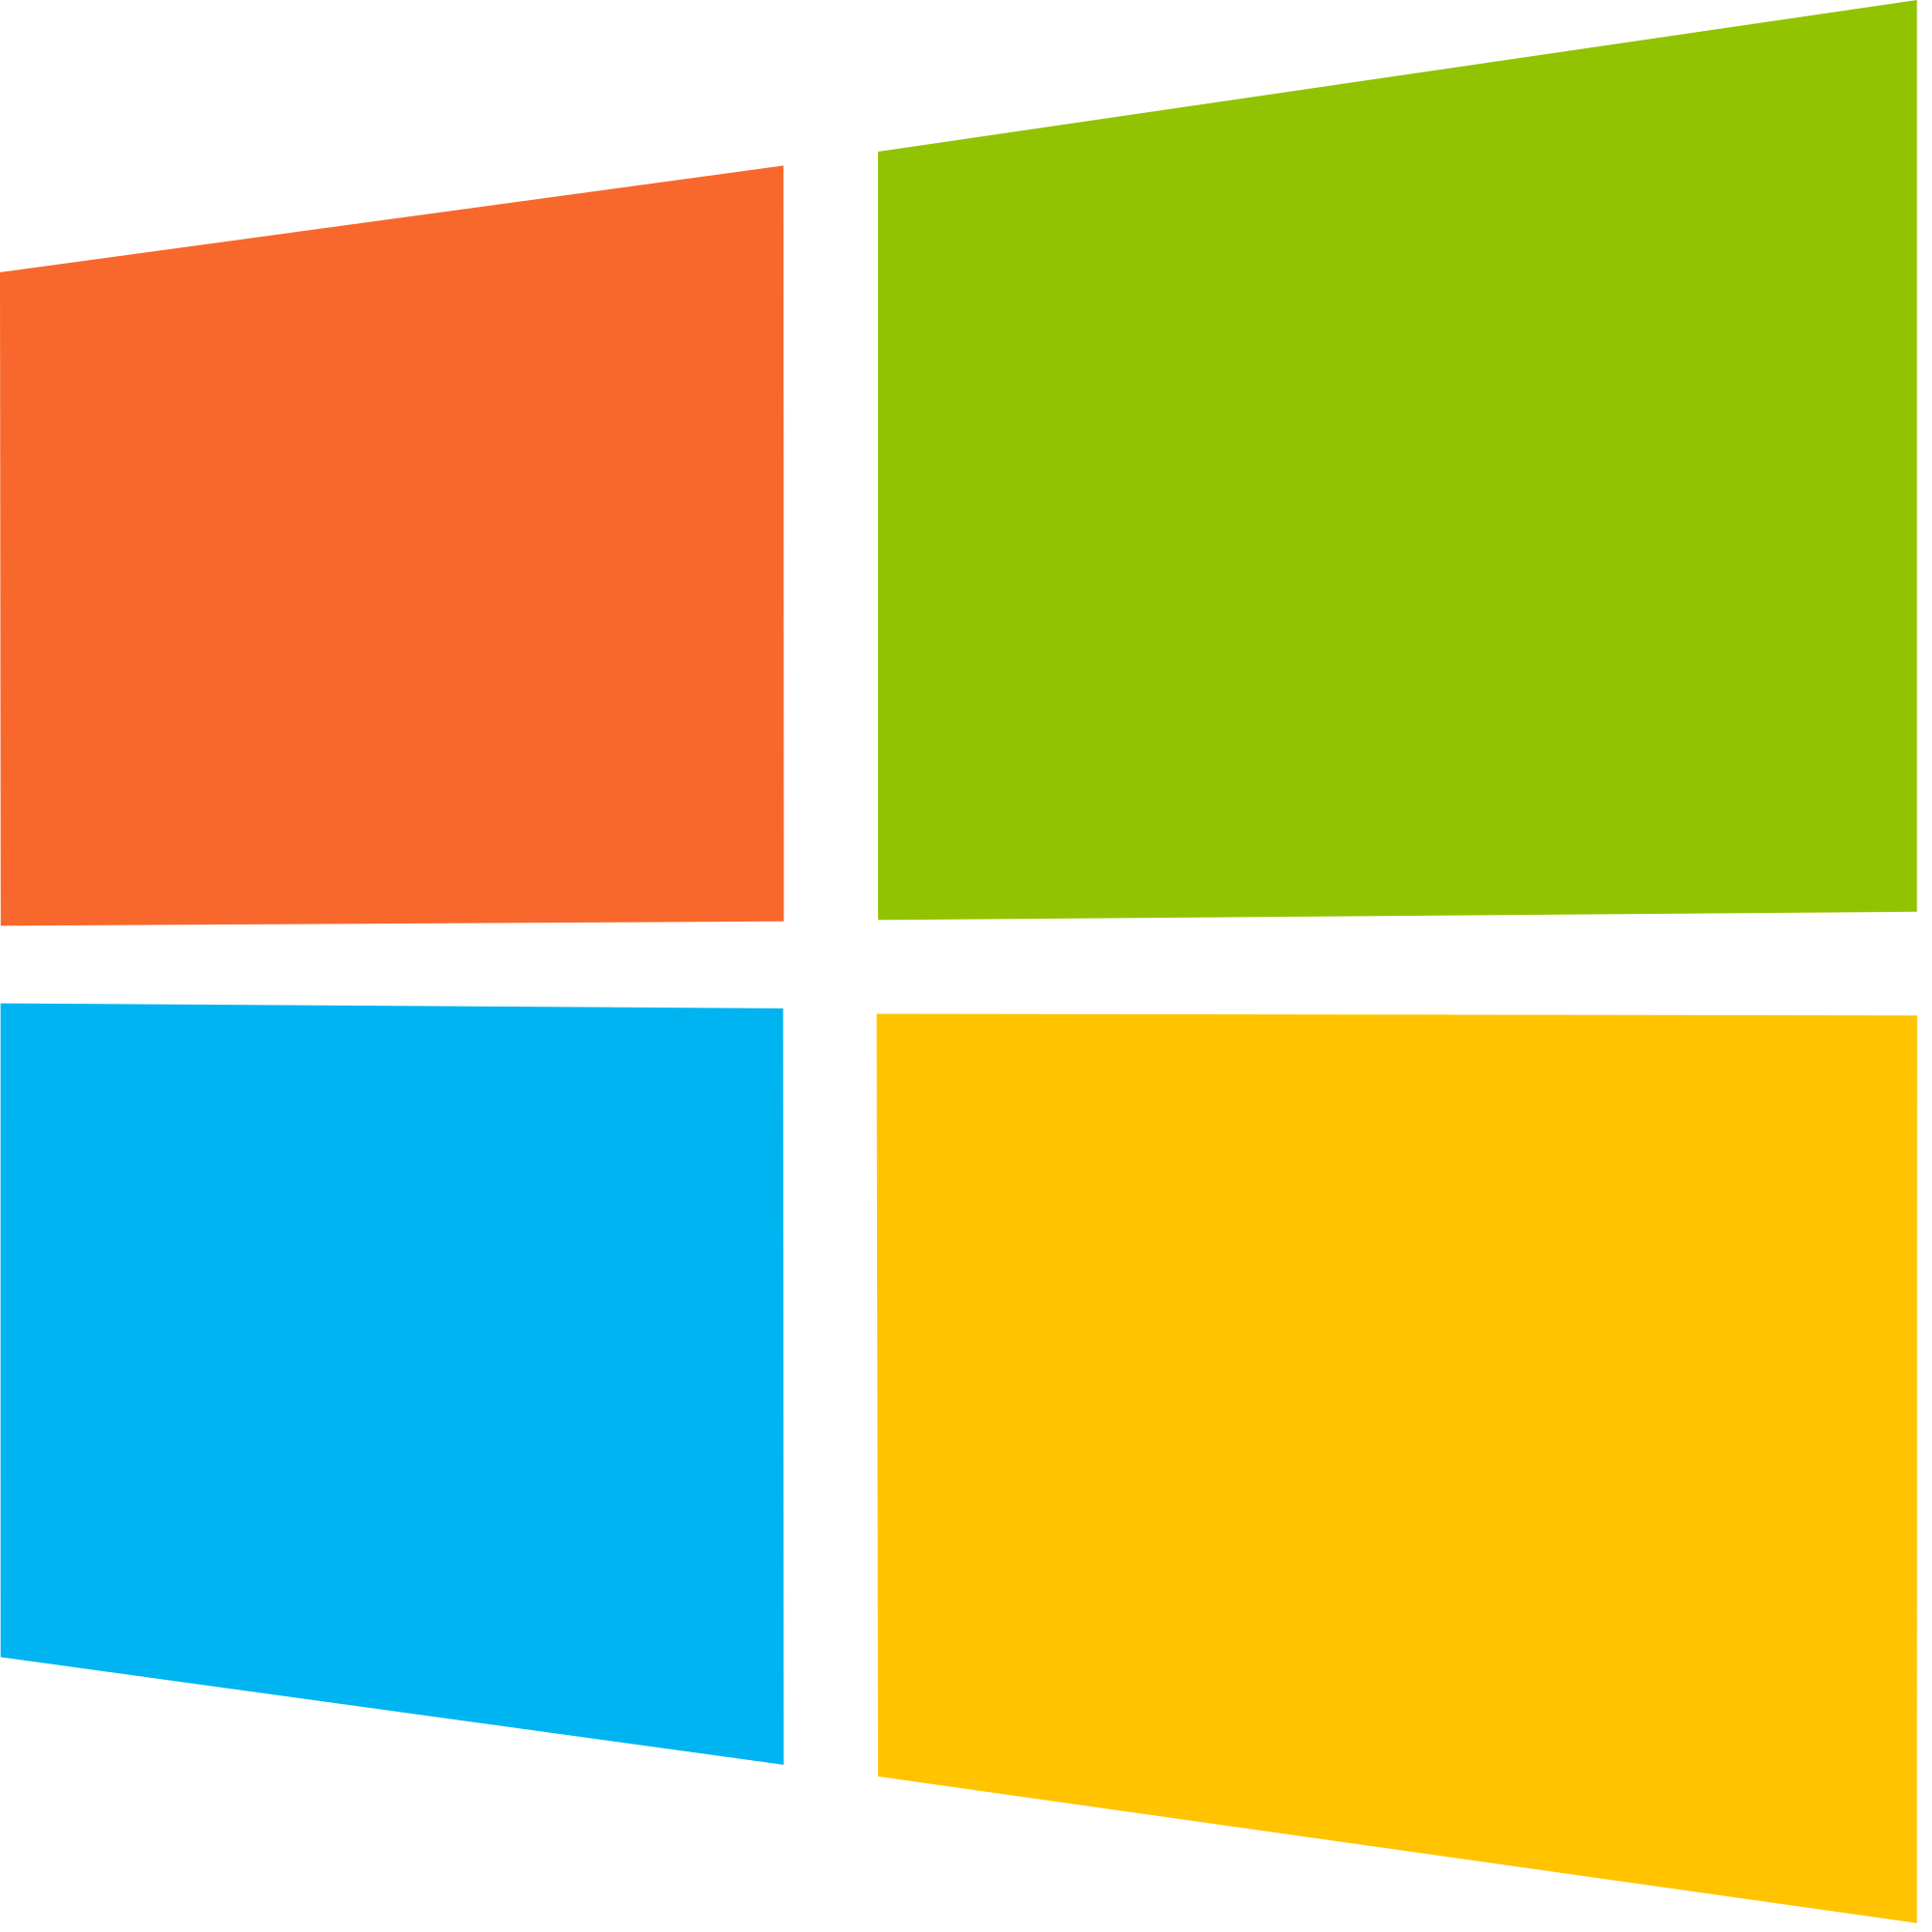 Windows transparent yellow. File logo derivative svg